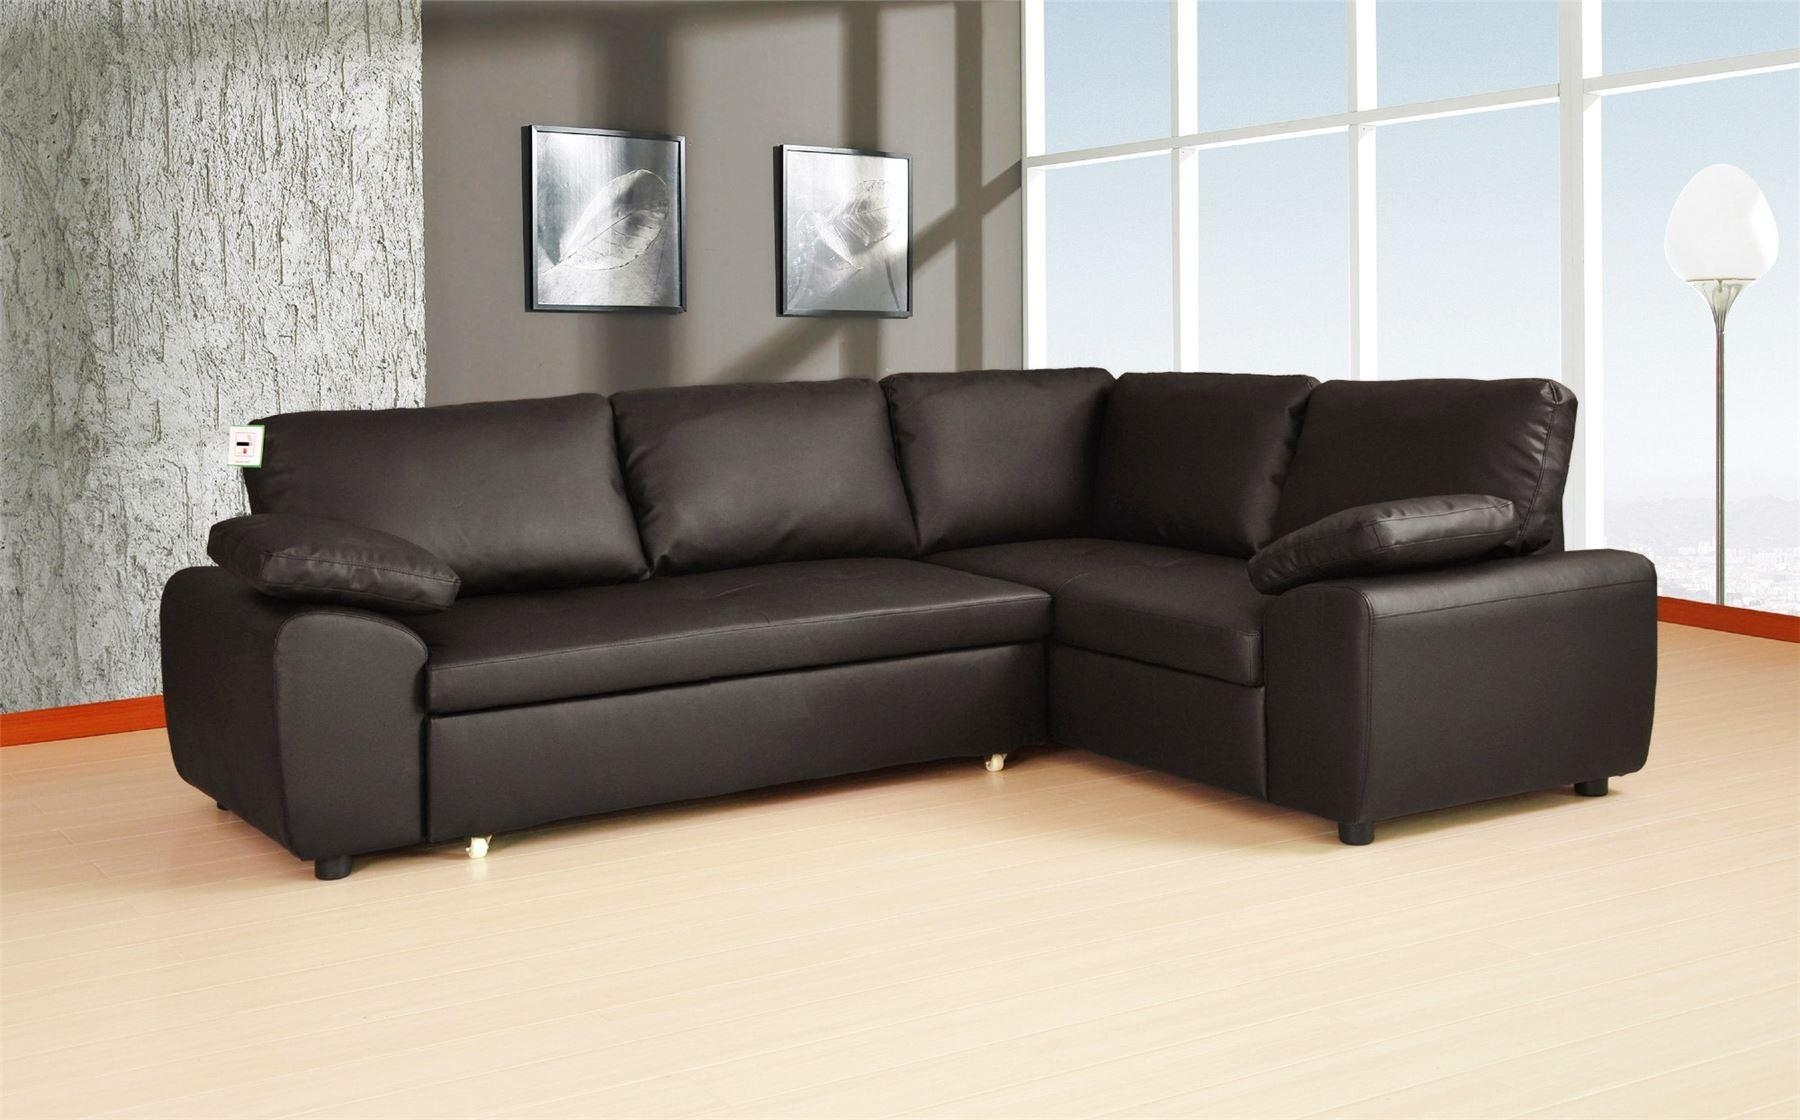 e saving sectional sofas simple sofa set designs in kenya 21 best ideas small brown leather corner